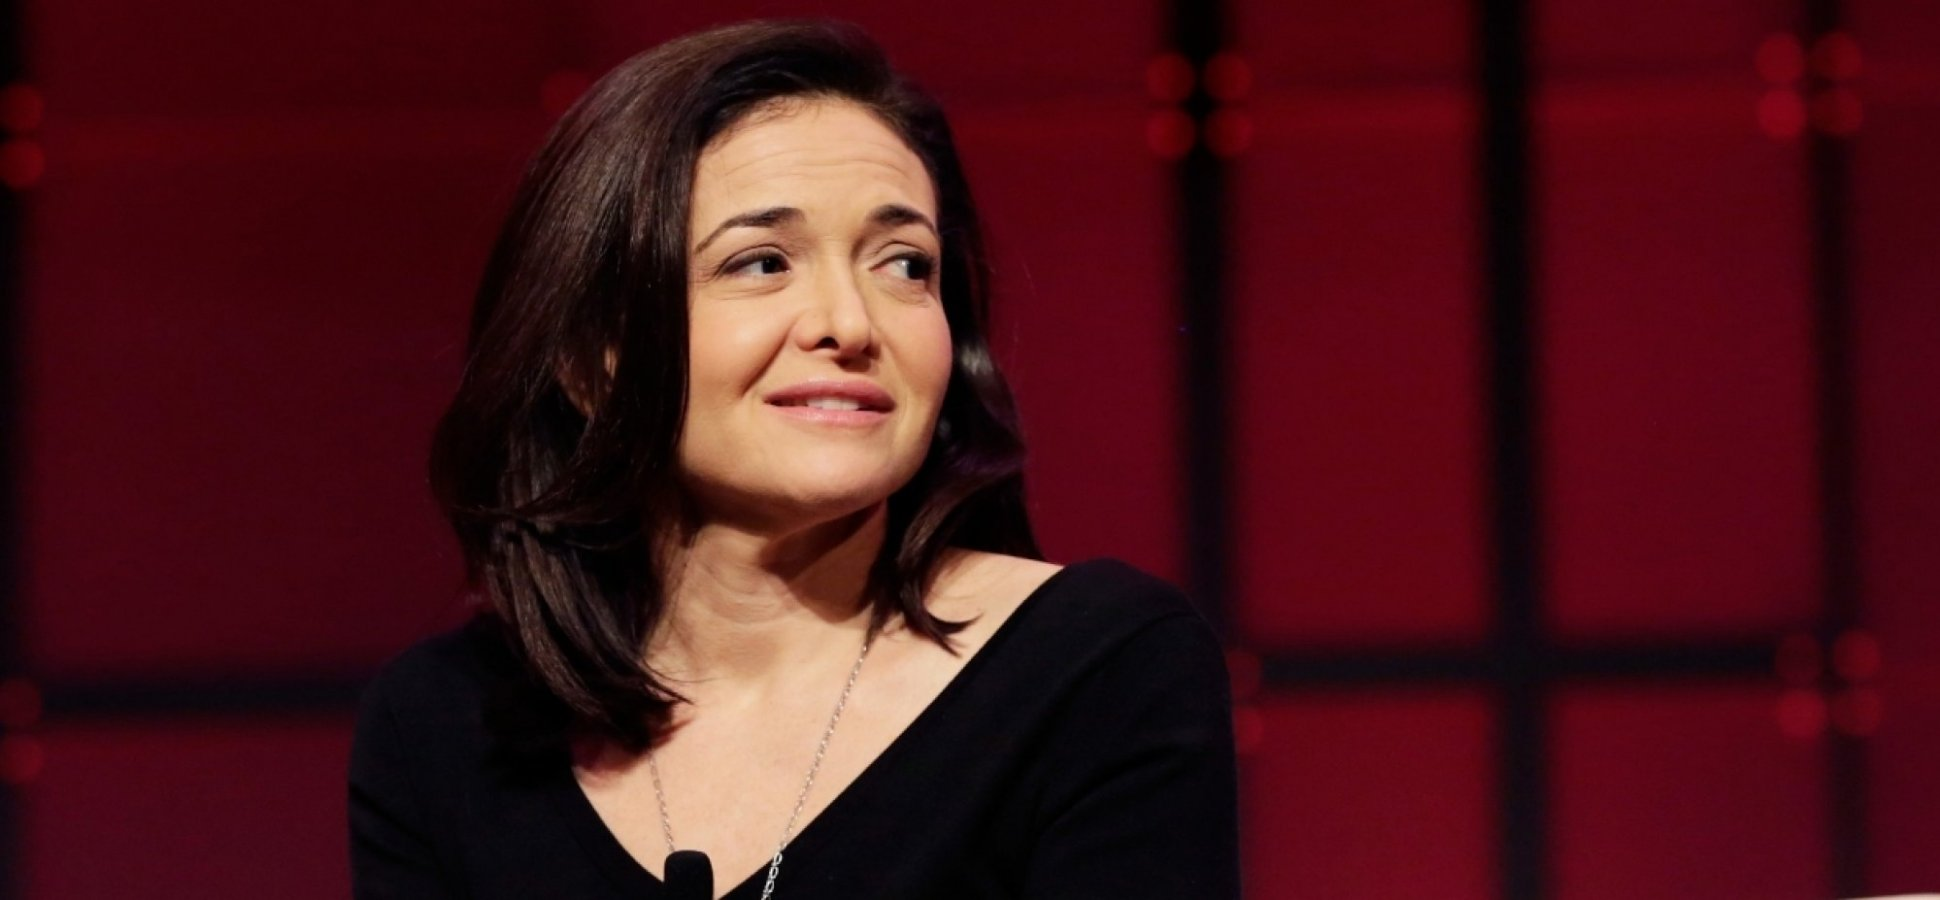 In Just 2 Words, Sheryl Sandberg Said 1 Thing Separates Those Who Achieve From Those Who Only Dream